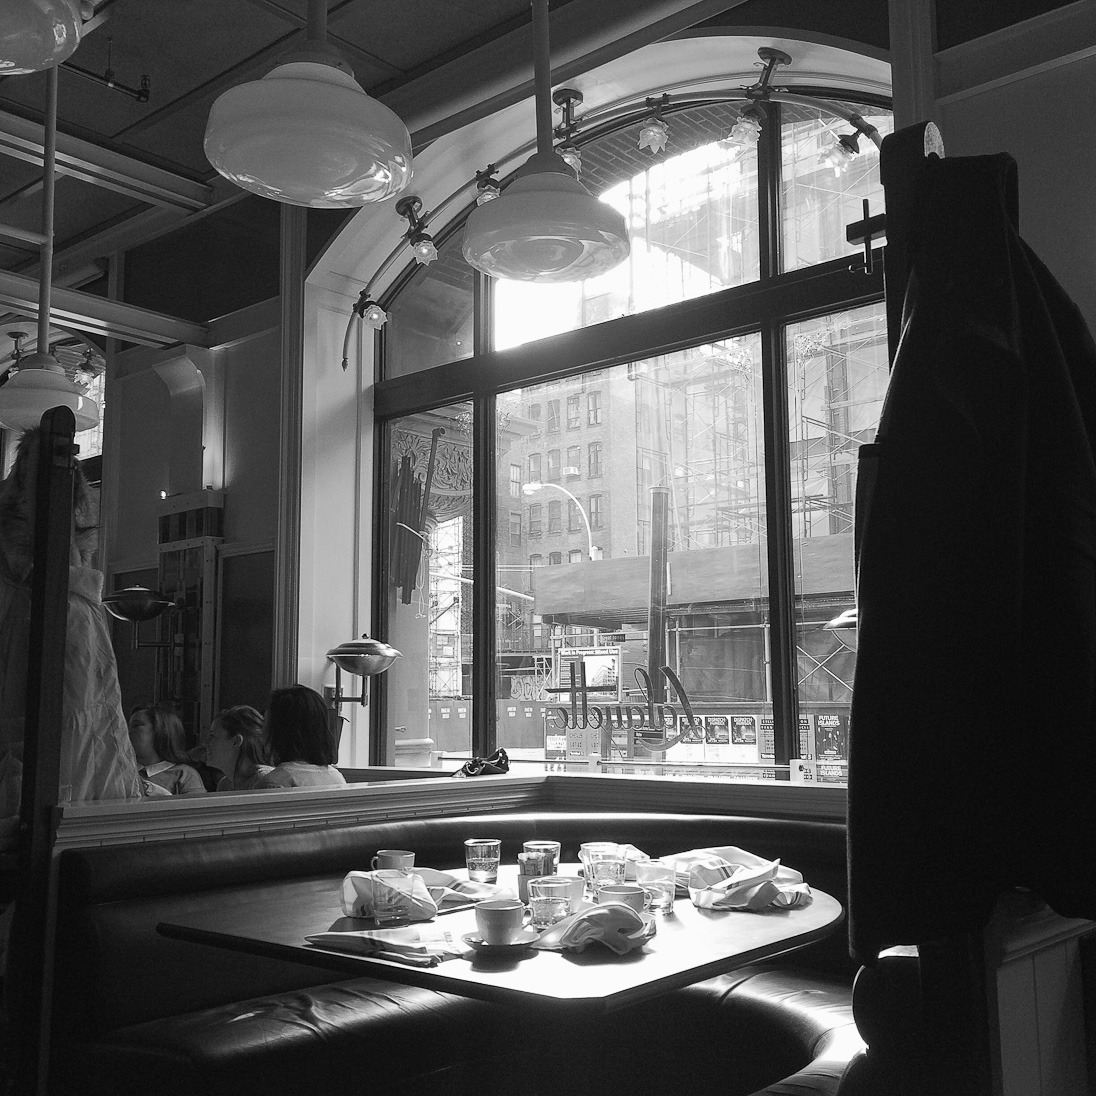 lafayette new york city noho restaurant dinner brunch eggs healthy coffee bay windows black and white food delish